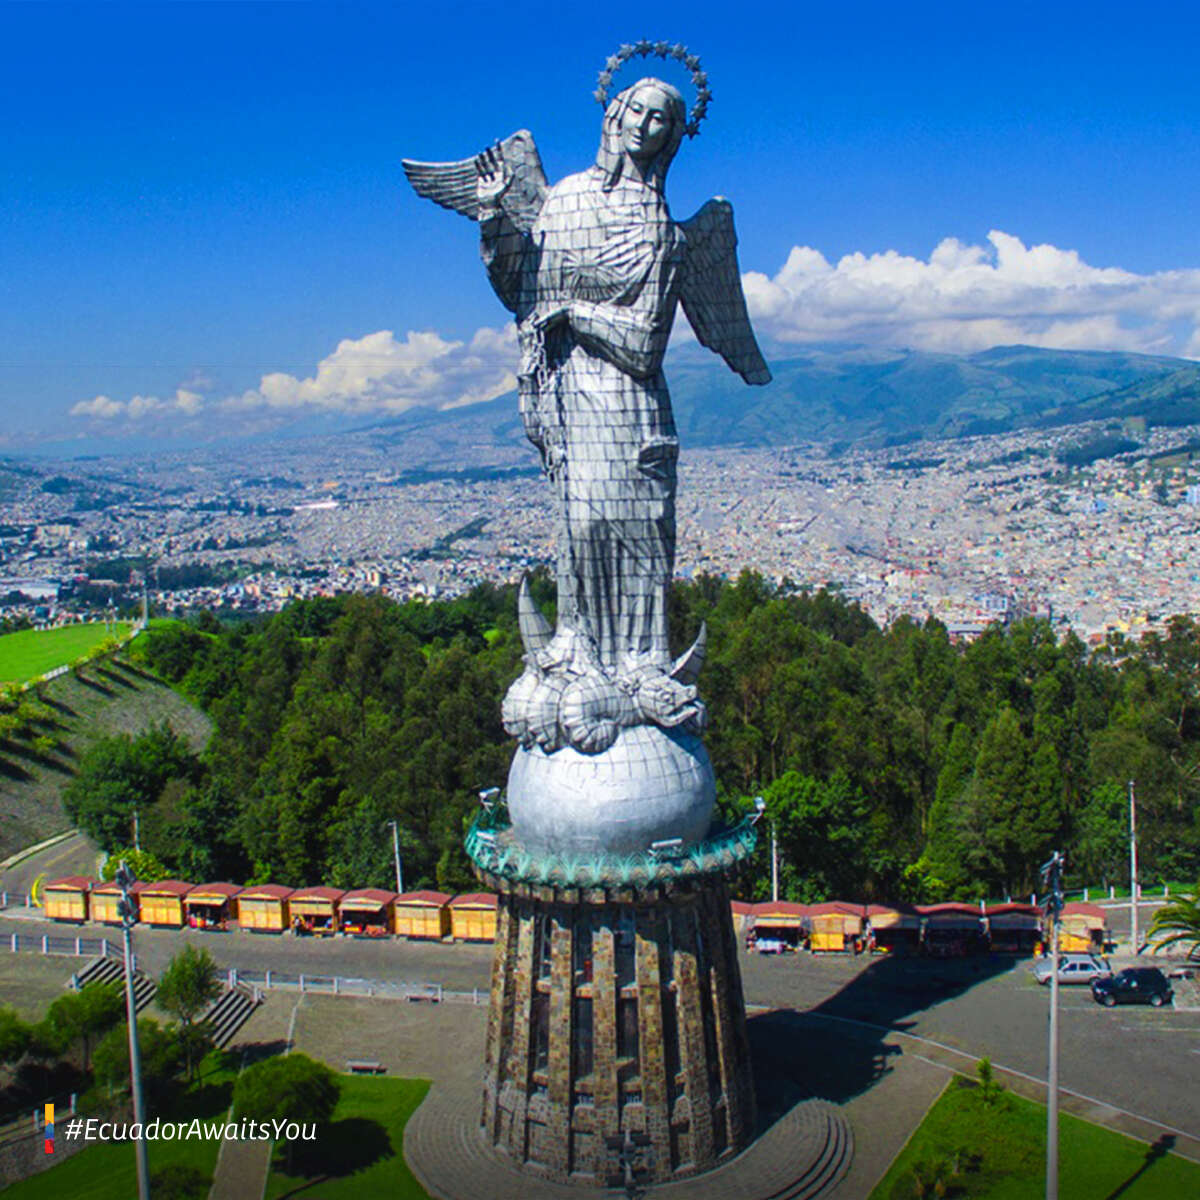 April 10 / Quito – Swissotel Quito